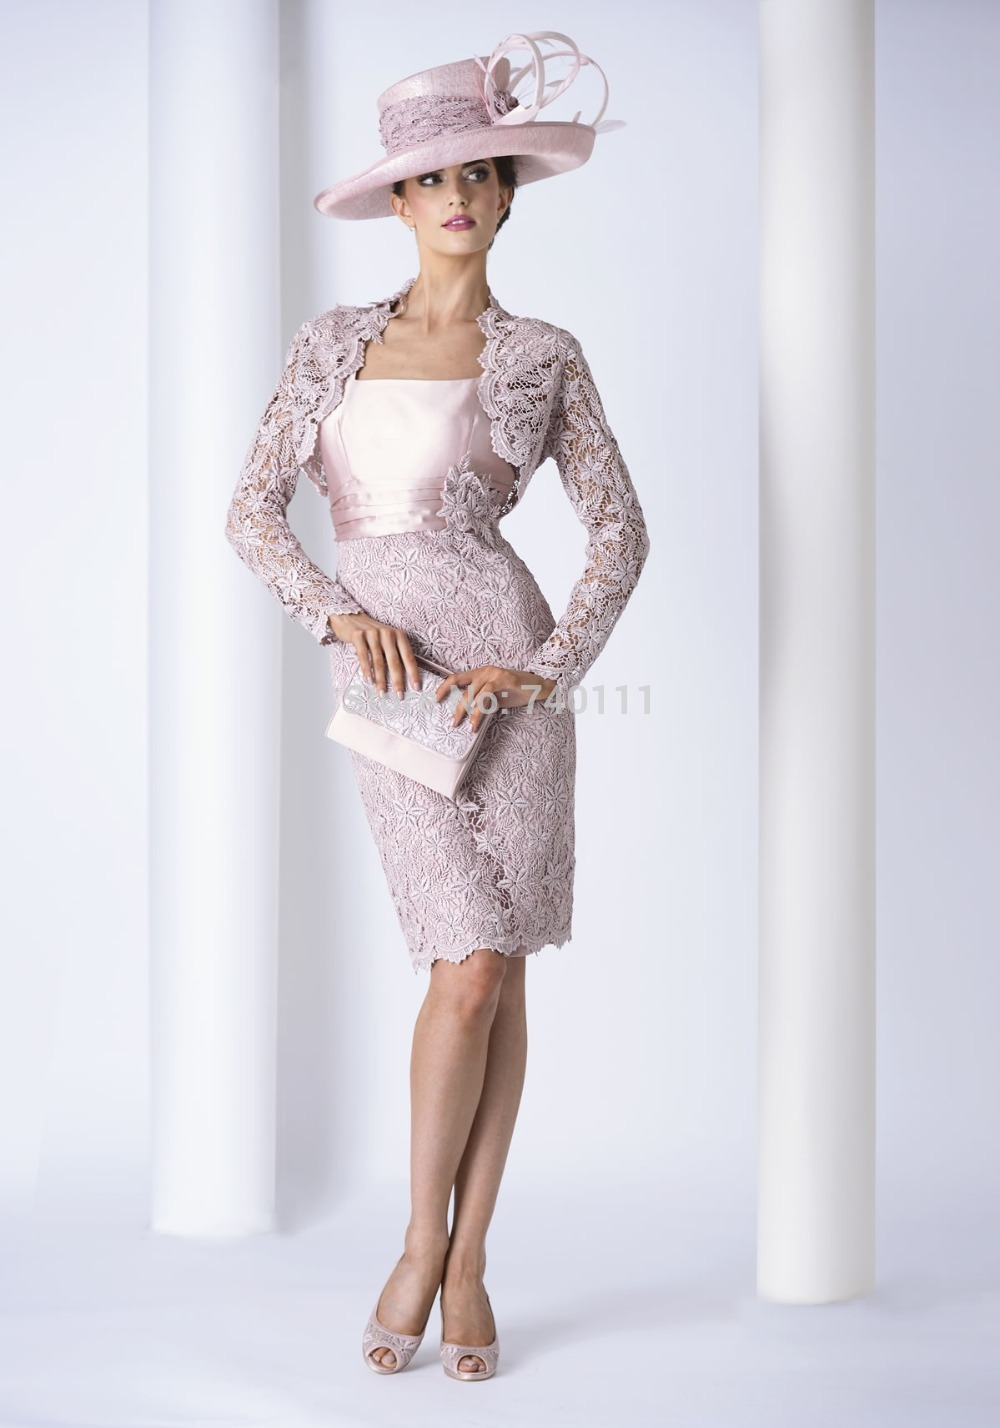 https://ae01.alicdn.com/kf/HTB13cDzHVXXXXXHaXXXq6xXFXXXN/Lace-Jacket-Knee-Length-Sheath-Mother-Of-The-Bride-Dress-font-b-Women-b-font-Formal.jpg